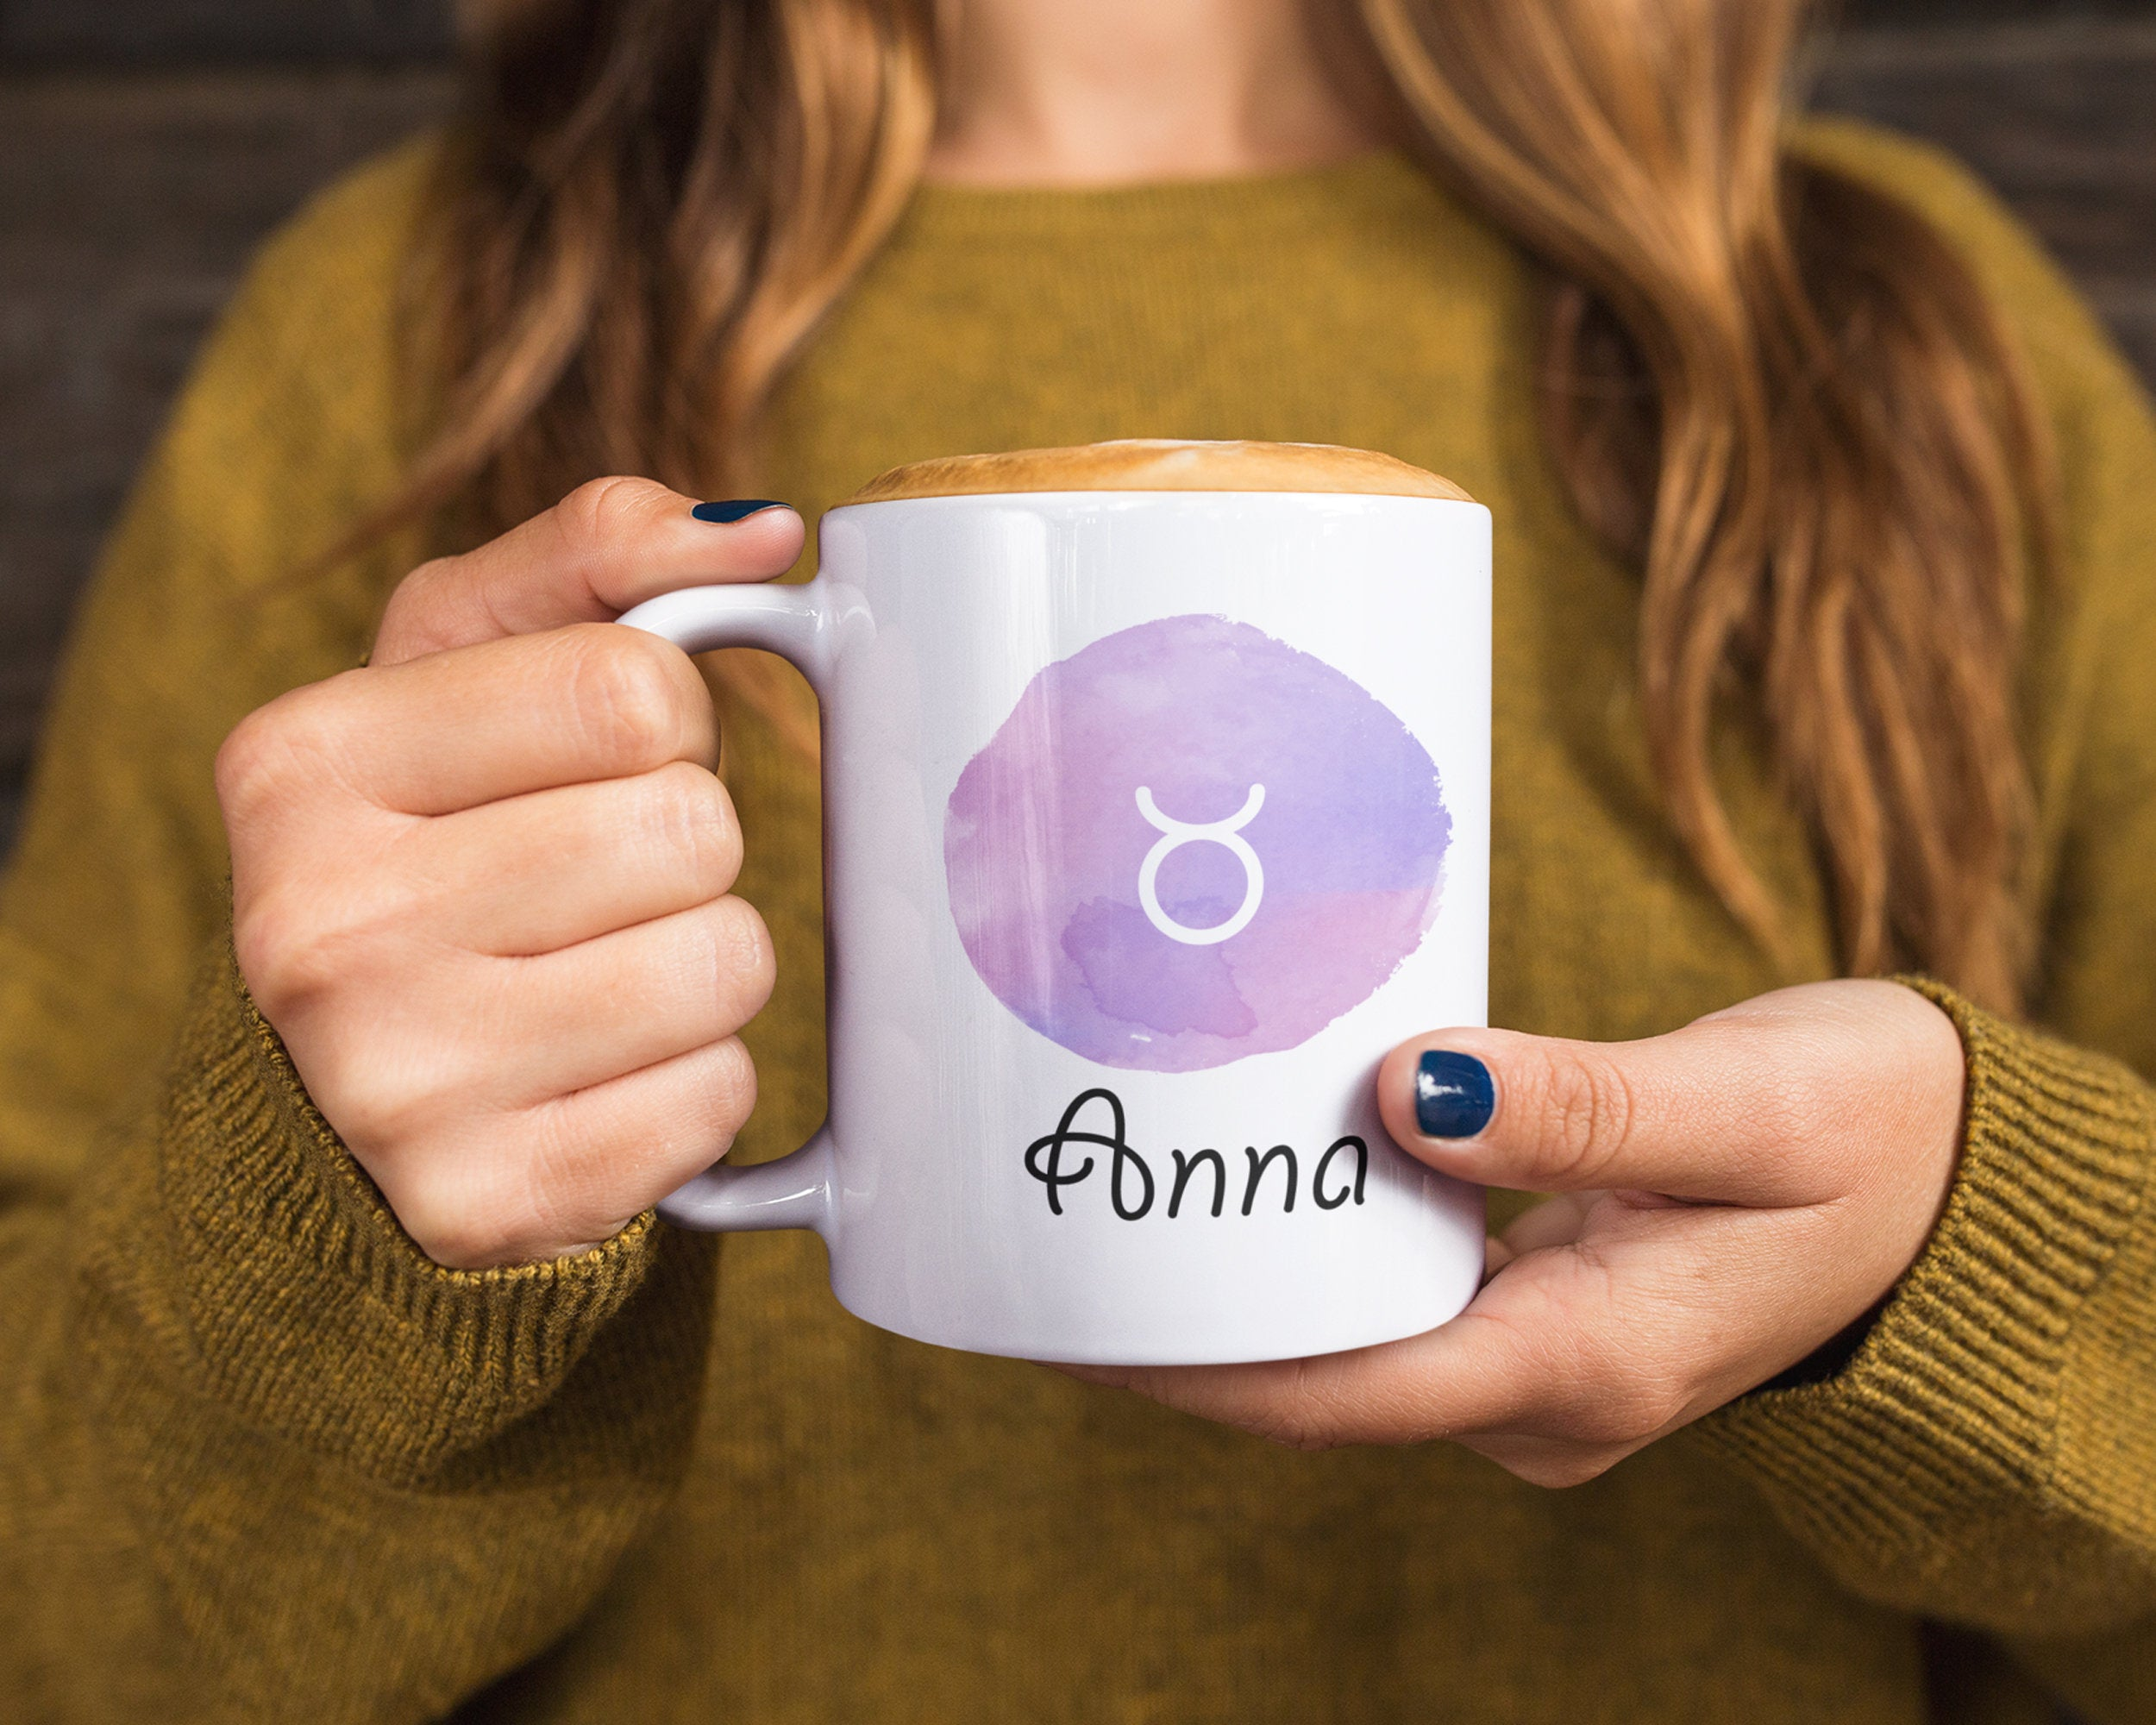 Taurus Mug - Taurus Constellation Coffee Mug - Taurus Gifts - Zodiac Gifts for Taurus - Zodiac Mug - Taurus Birthday Gift - Taurus Cup Gifts - HoneyCustom